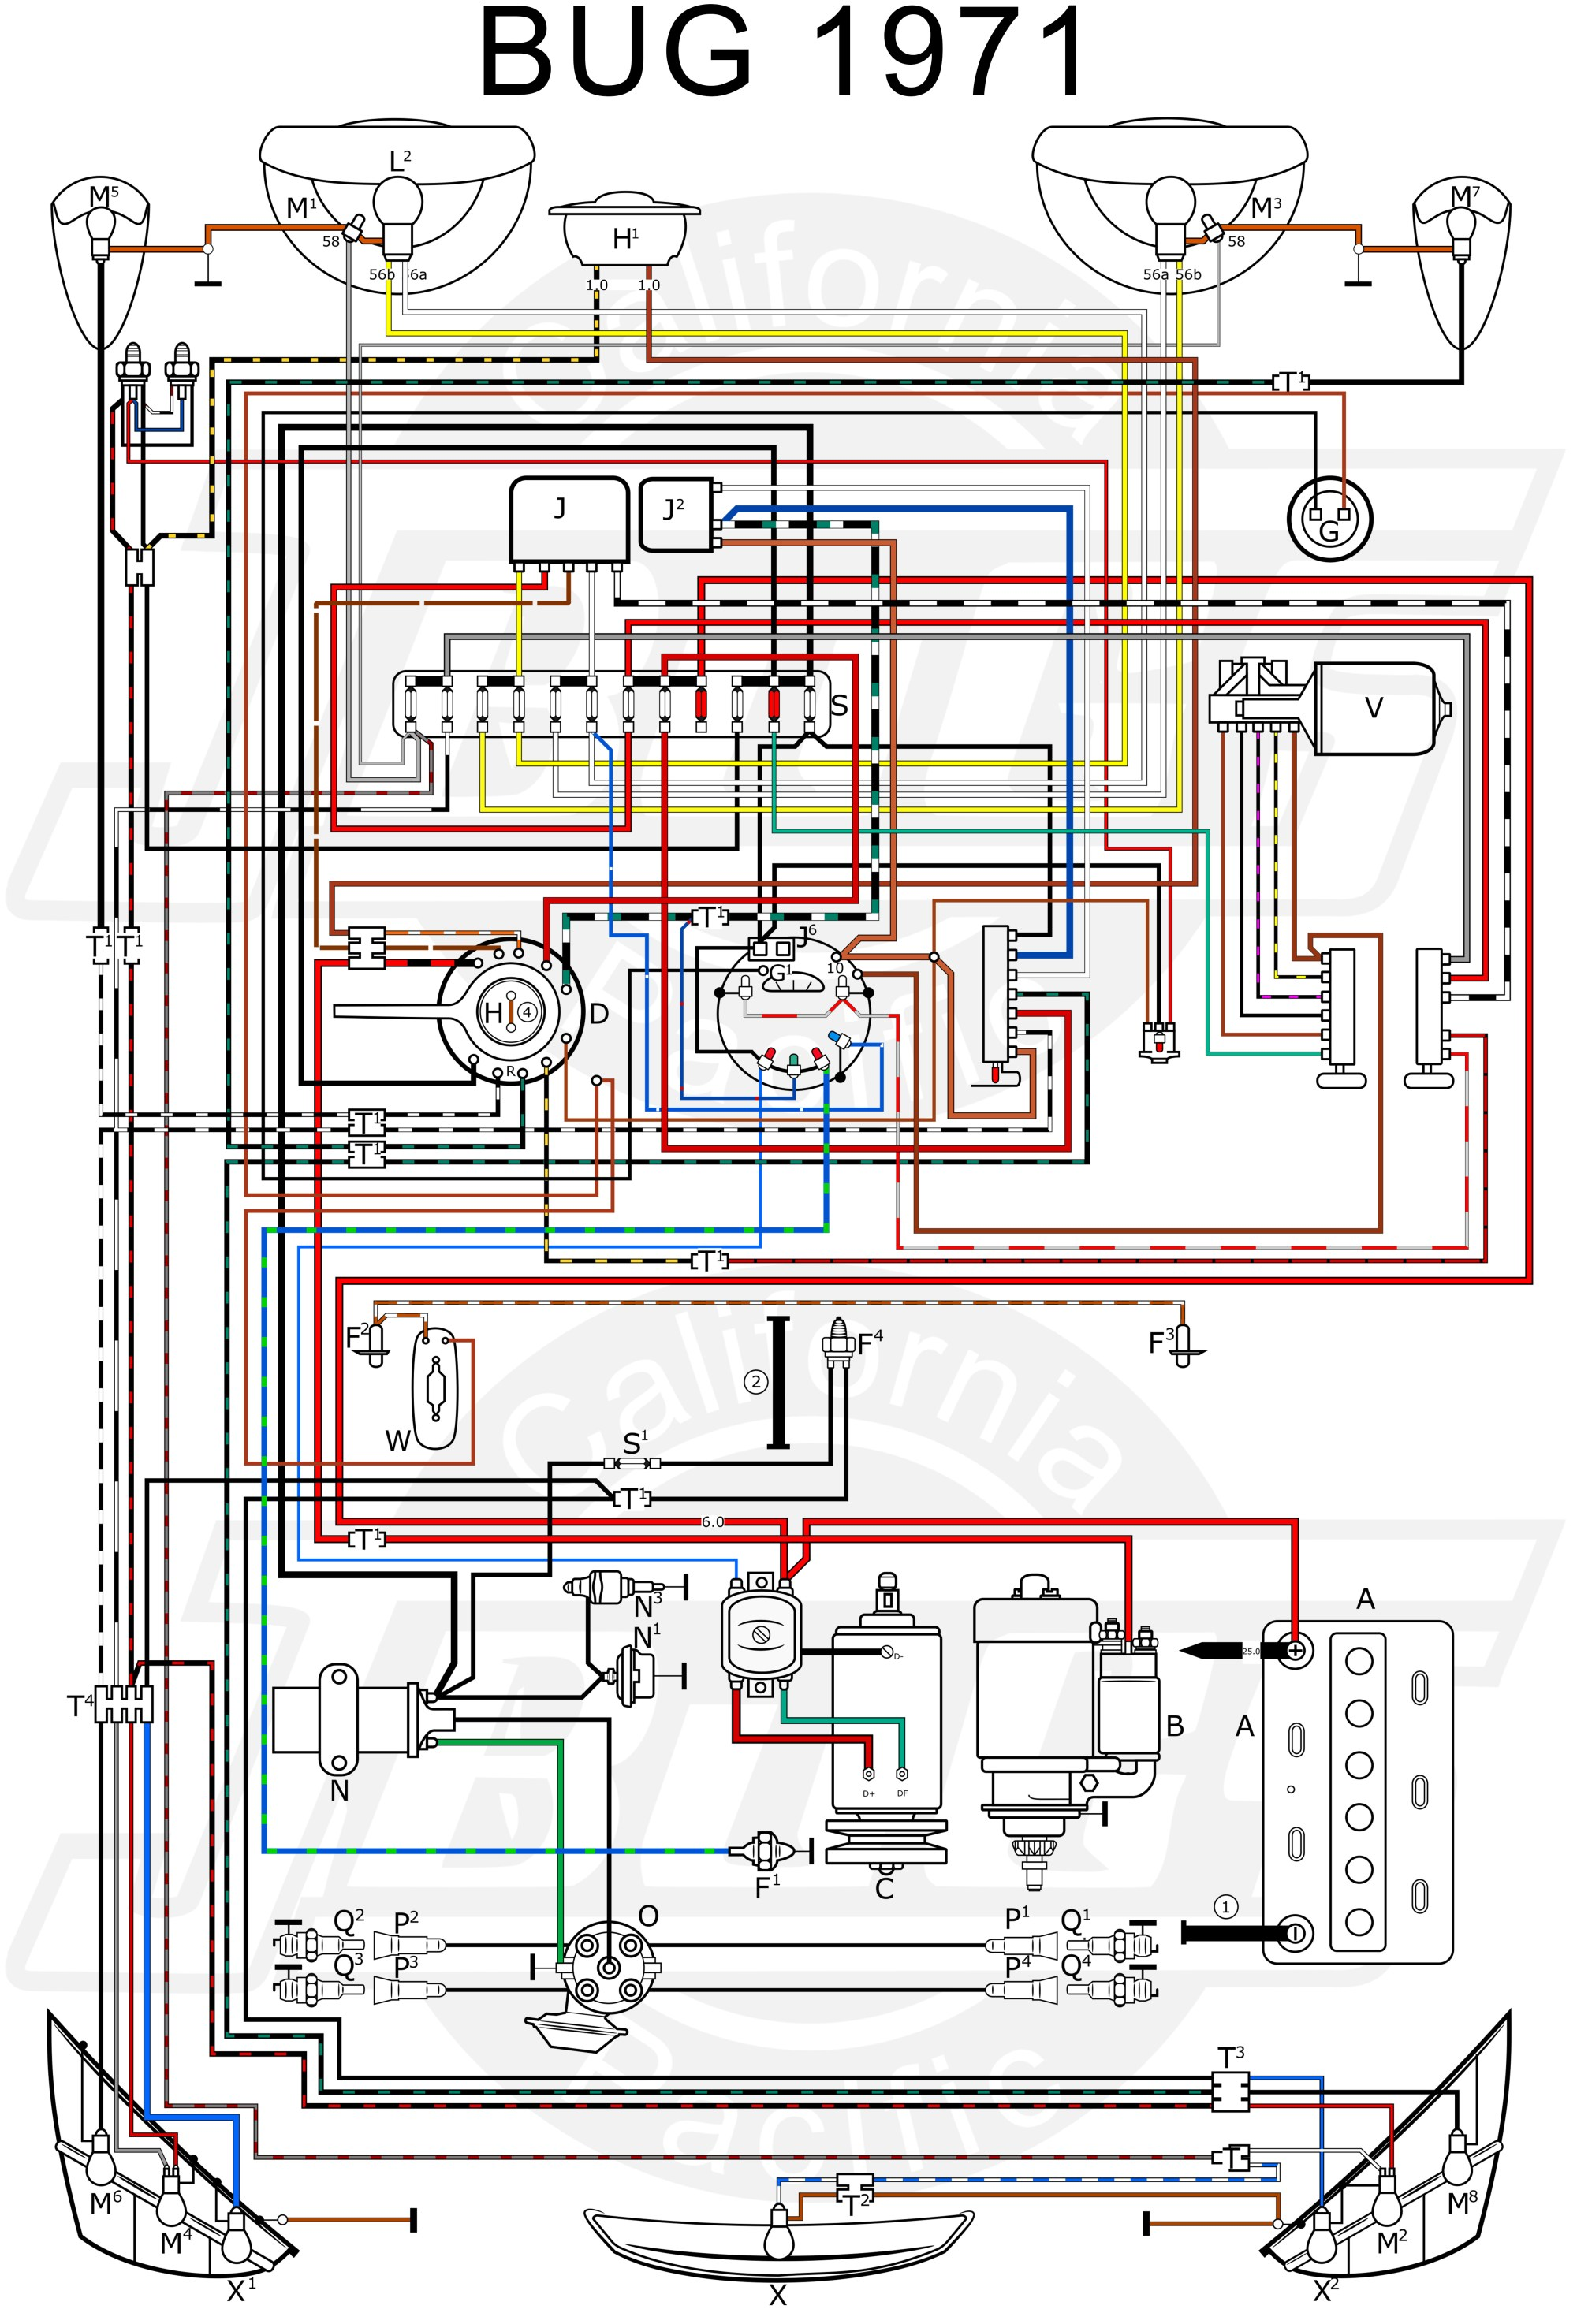 hight resolution of 1970 vw beetle wiring schematic schema wiring diagram online vanagon wiring diagram 1970 bug wiring diagram